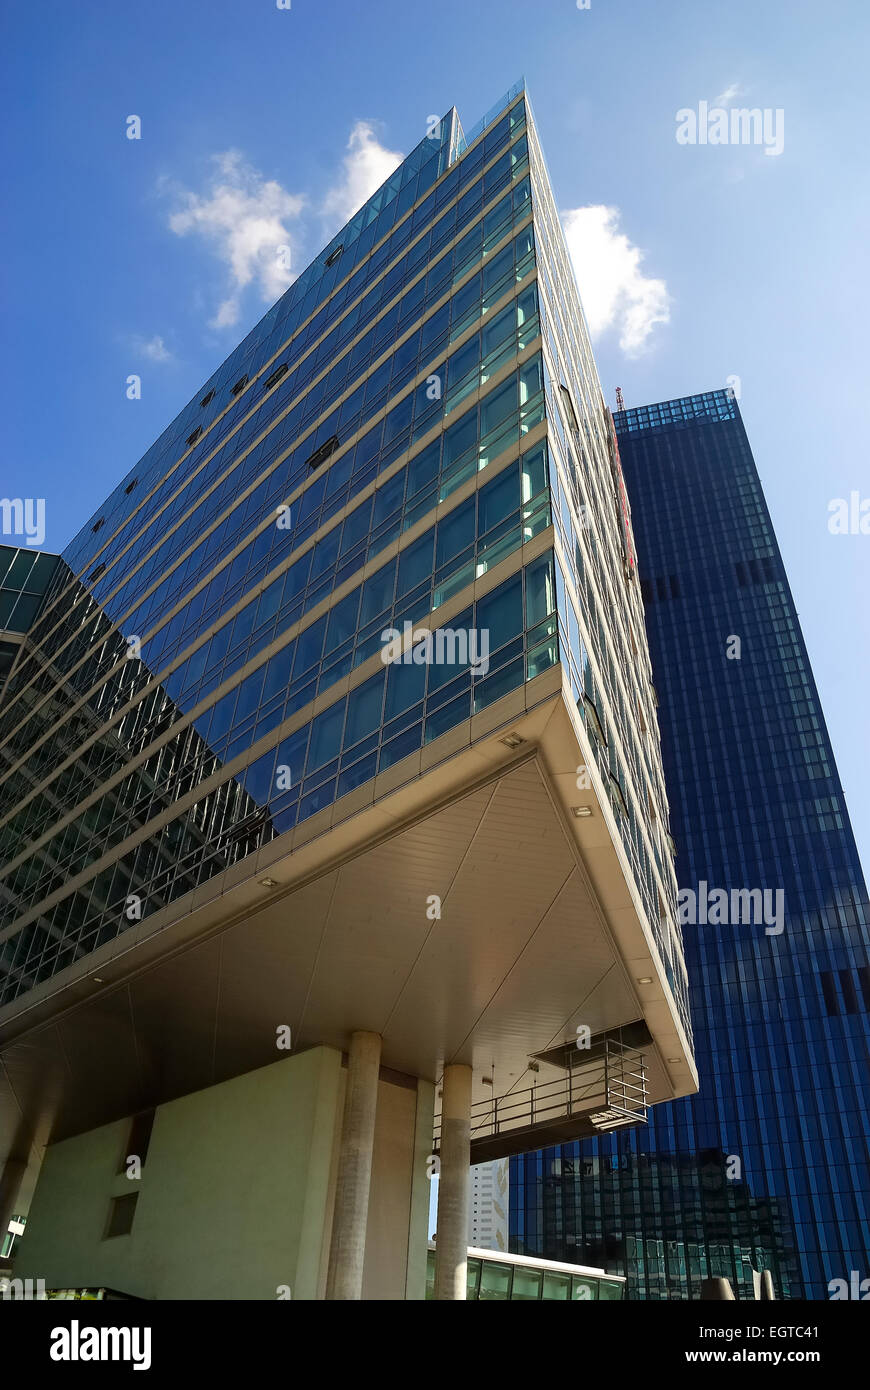 The Vienna International Centre (VIC) is the campus and building complex hosting the United Nations Office at Vienna. - Stock Image